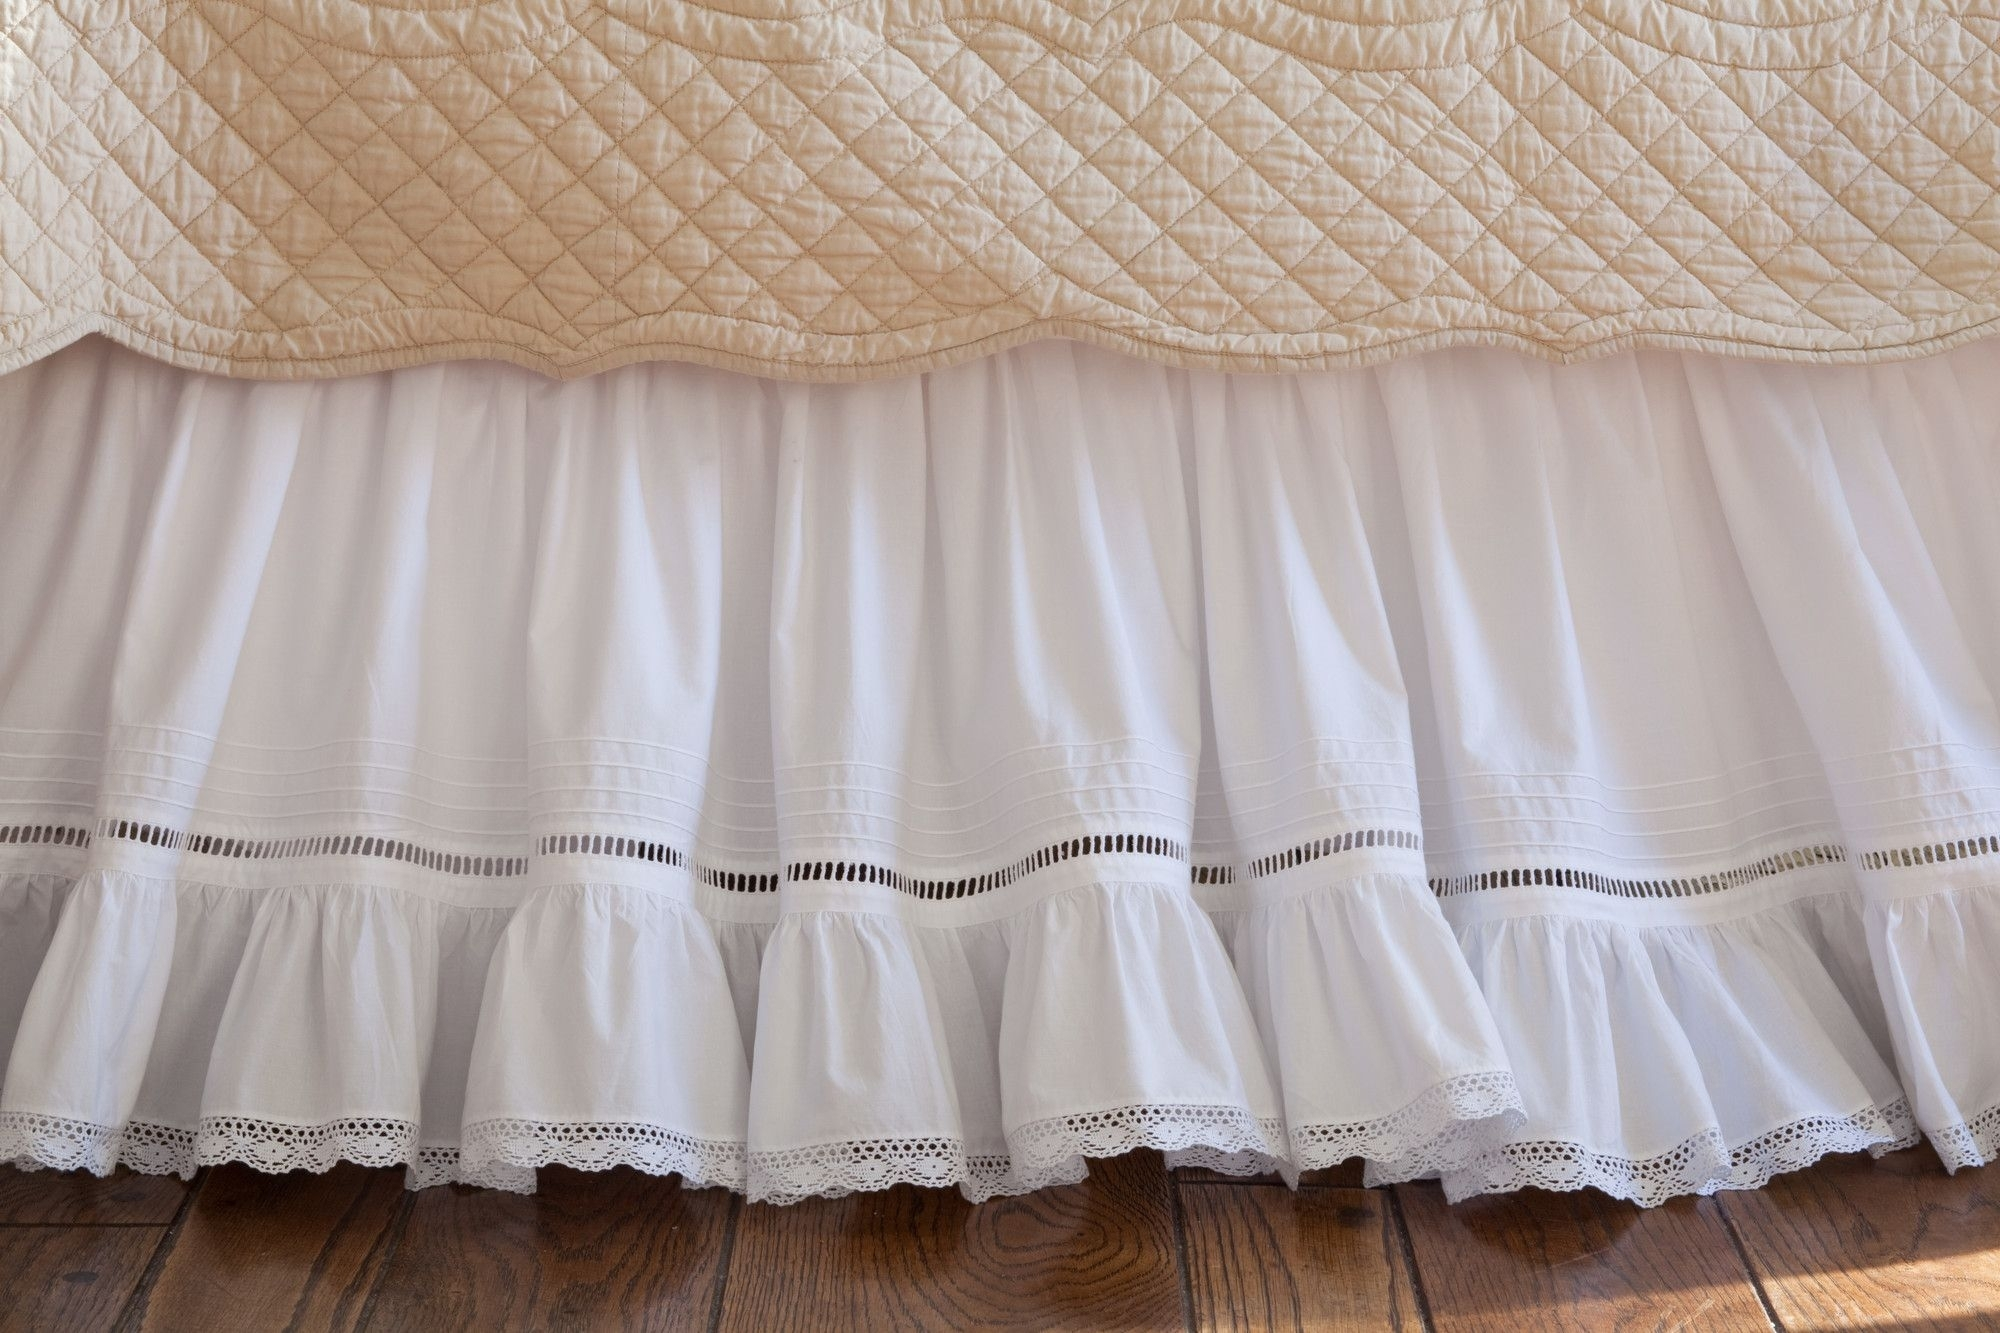 Crocheted Bed Skirts You Ll Love In 2021 Visualhunt